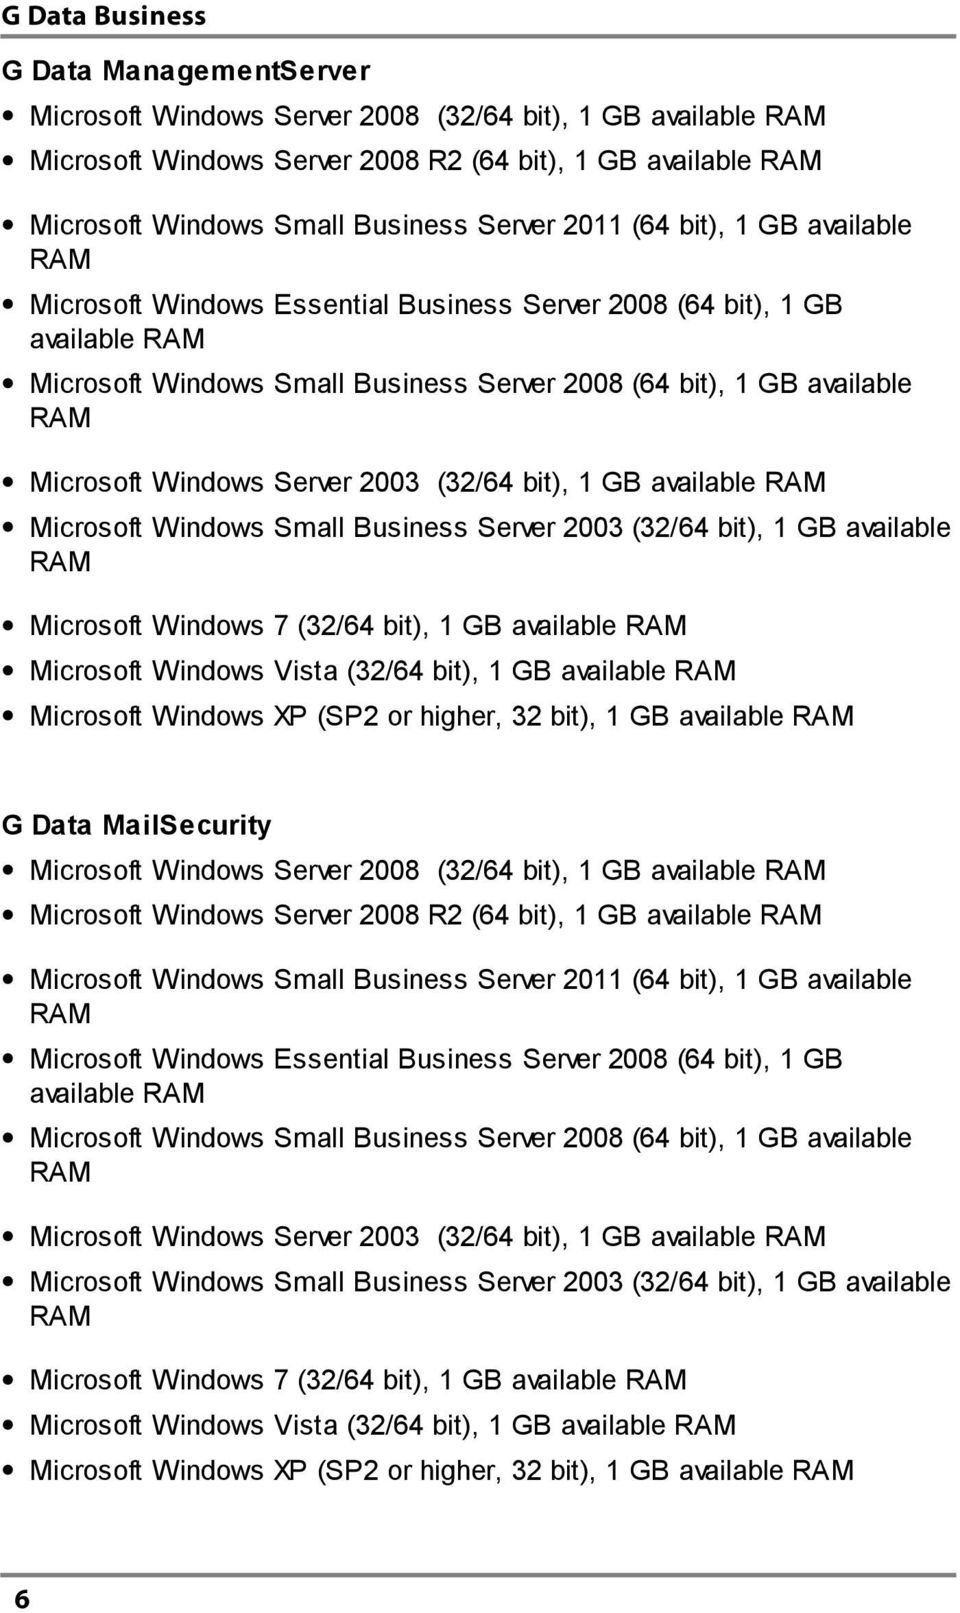 Server 2003 (32/64 bit), 1 GB available RAM Microsoft Windows Small Business Server 2003 (32/64 bit), 1 GB available RAM Microsoft Windows 7 (32/64 bit), 1 GB available RAM Microsoft Windows Vista